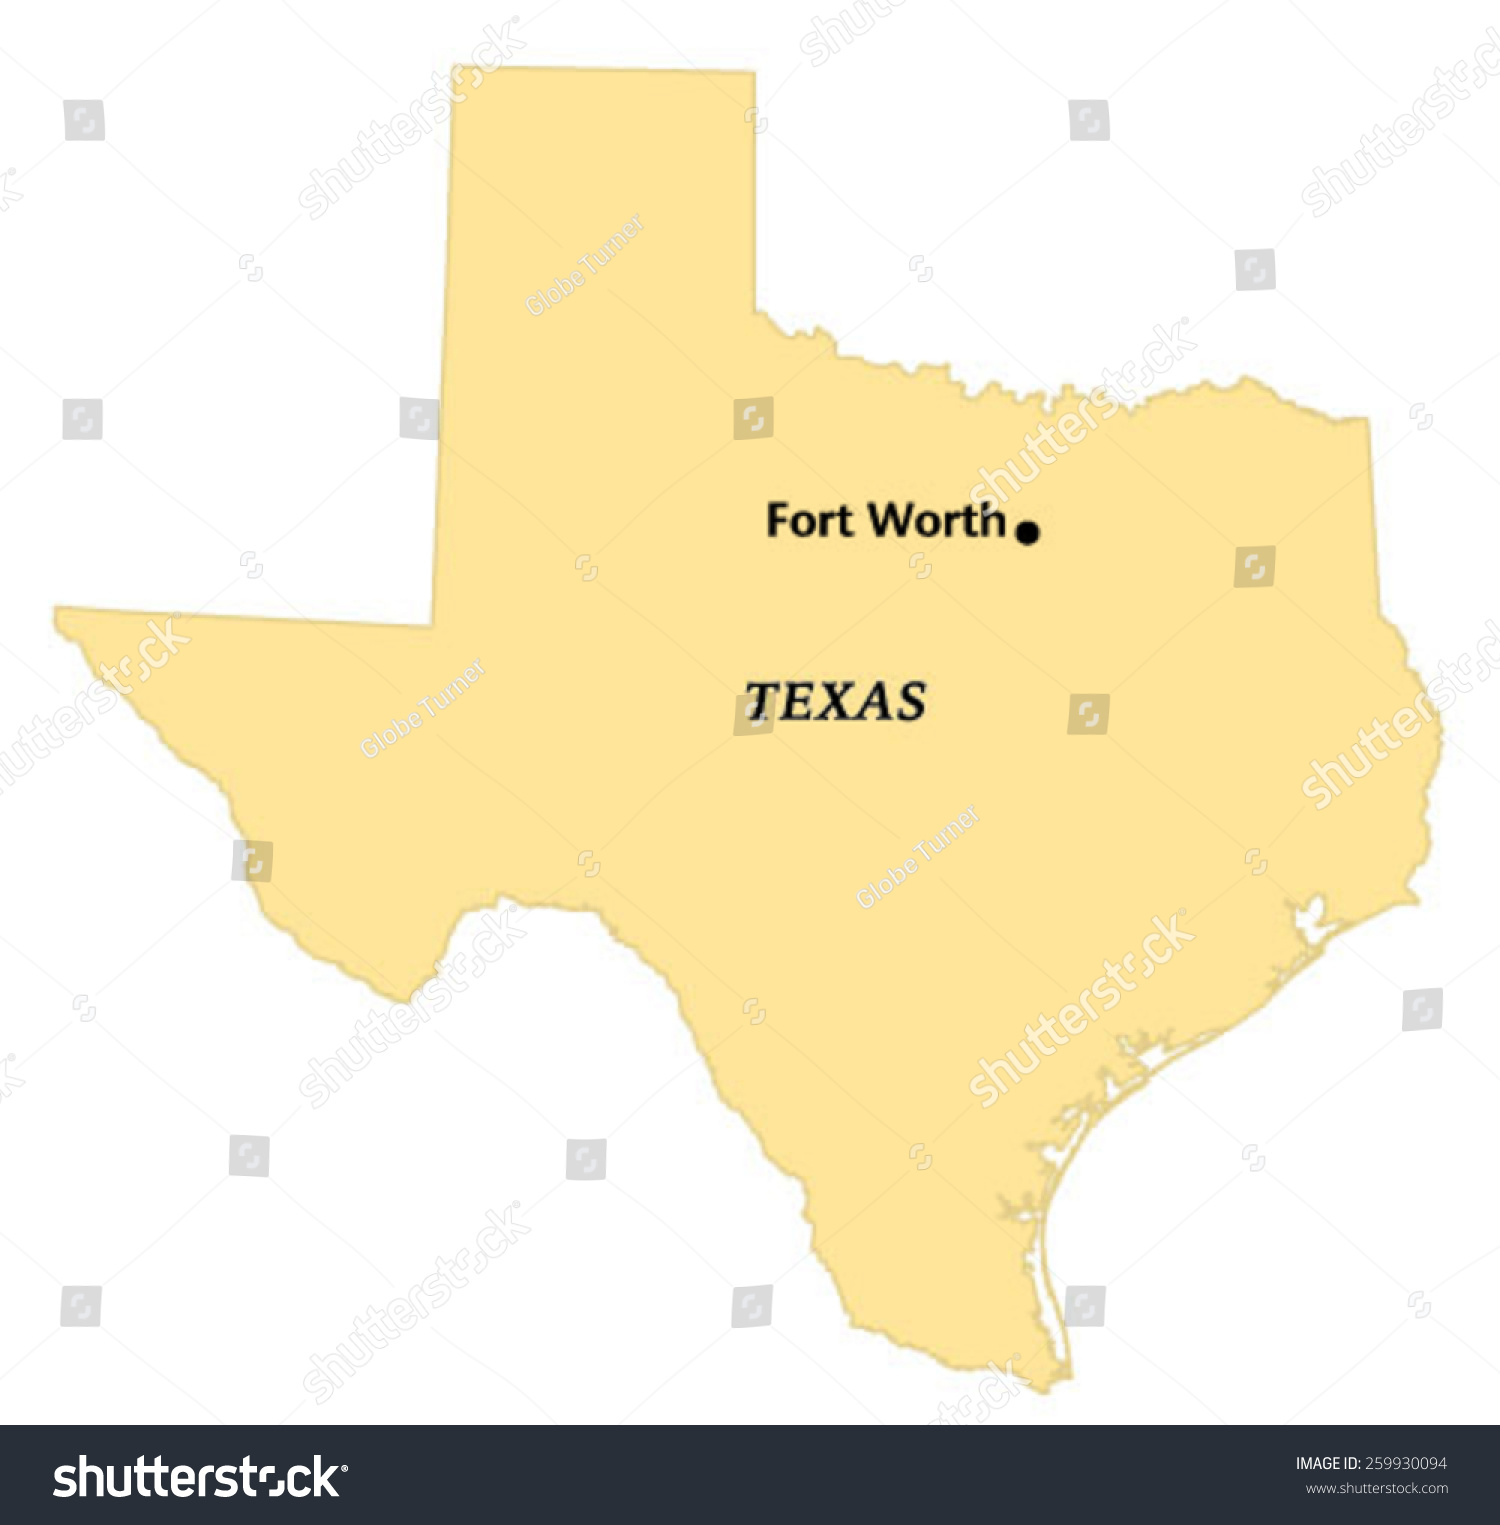 Fort Worth Texas Locate Map Stock Vector (Royalty Free) 259930094 ...